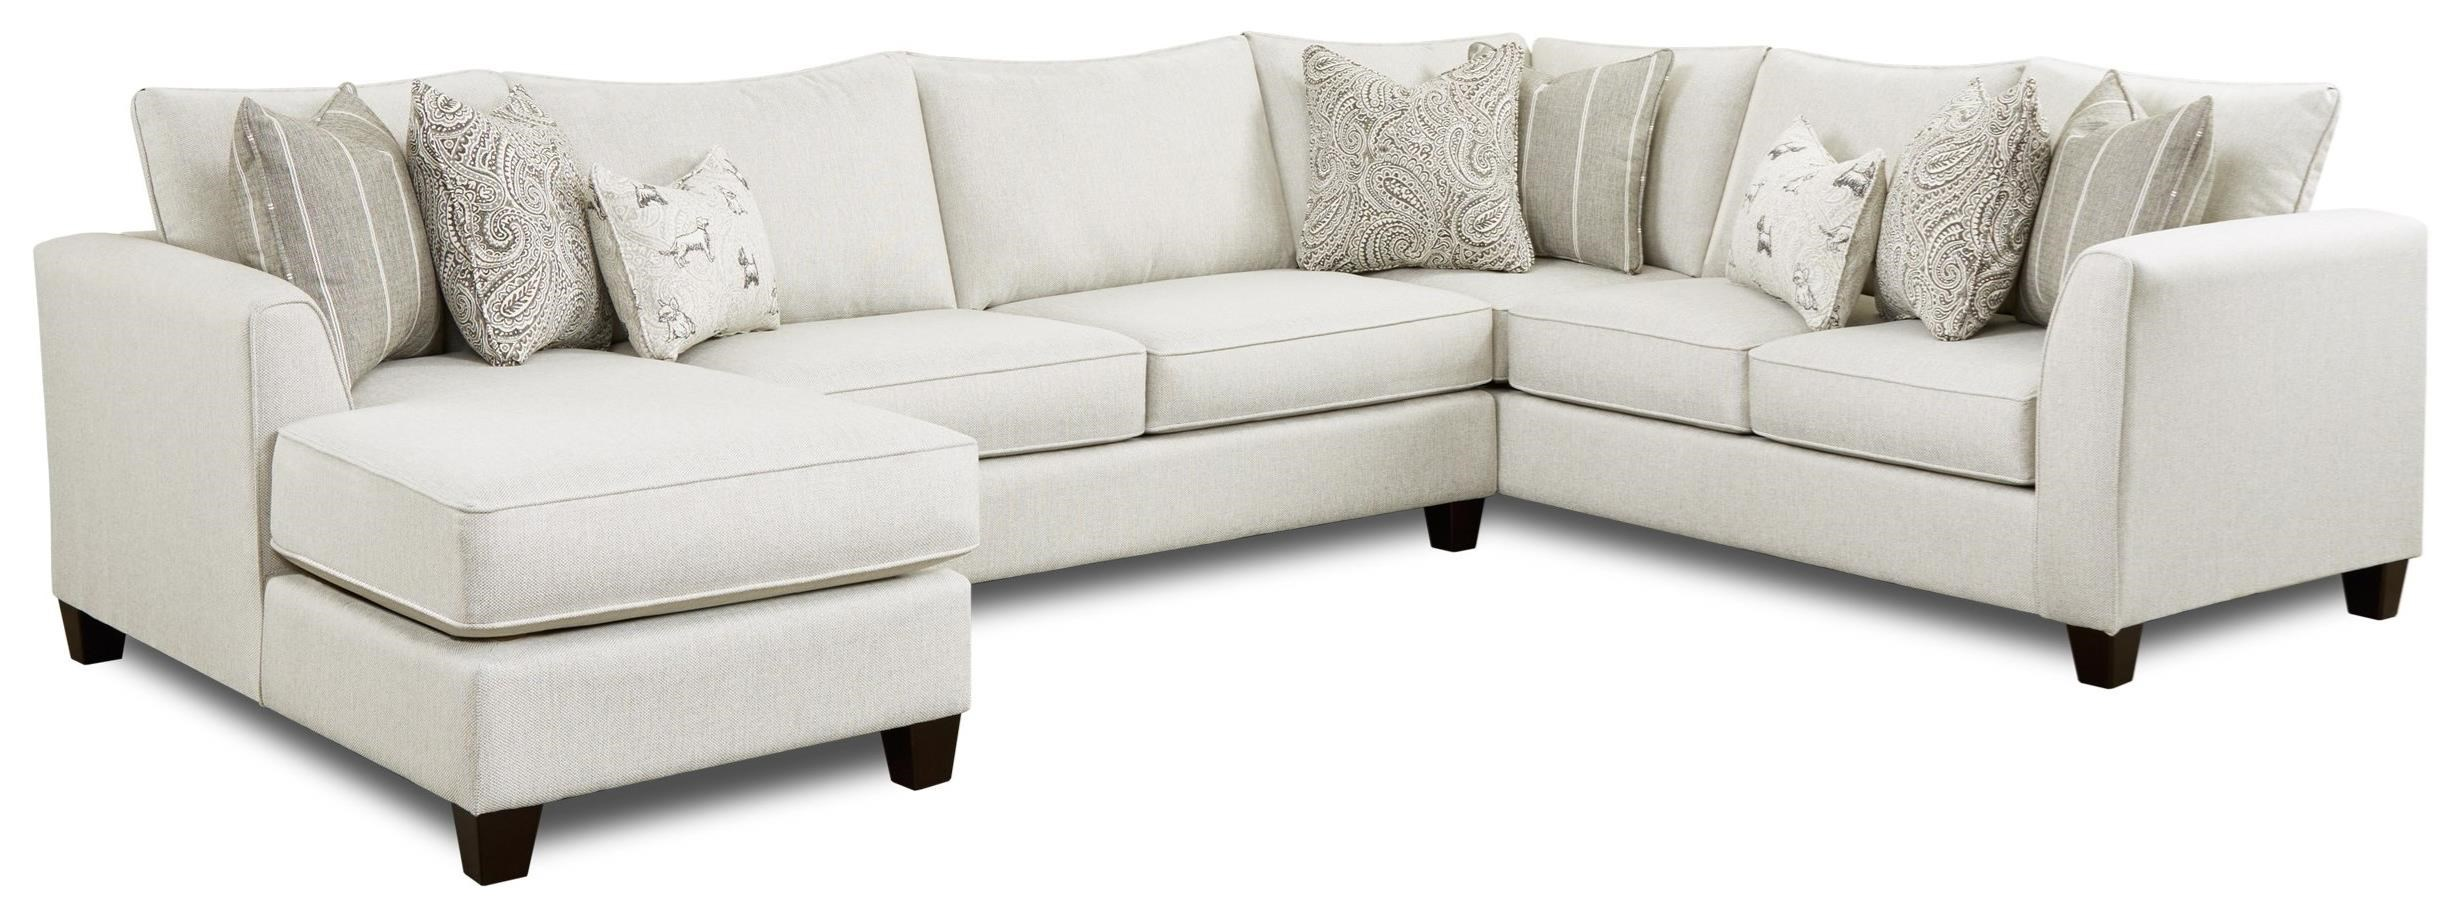 3-Piece Sectional with Chaise